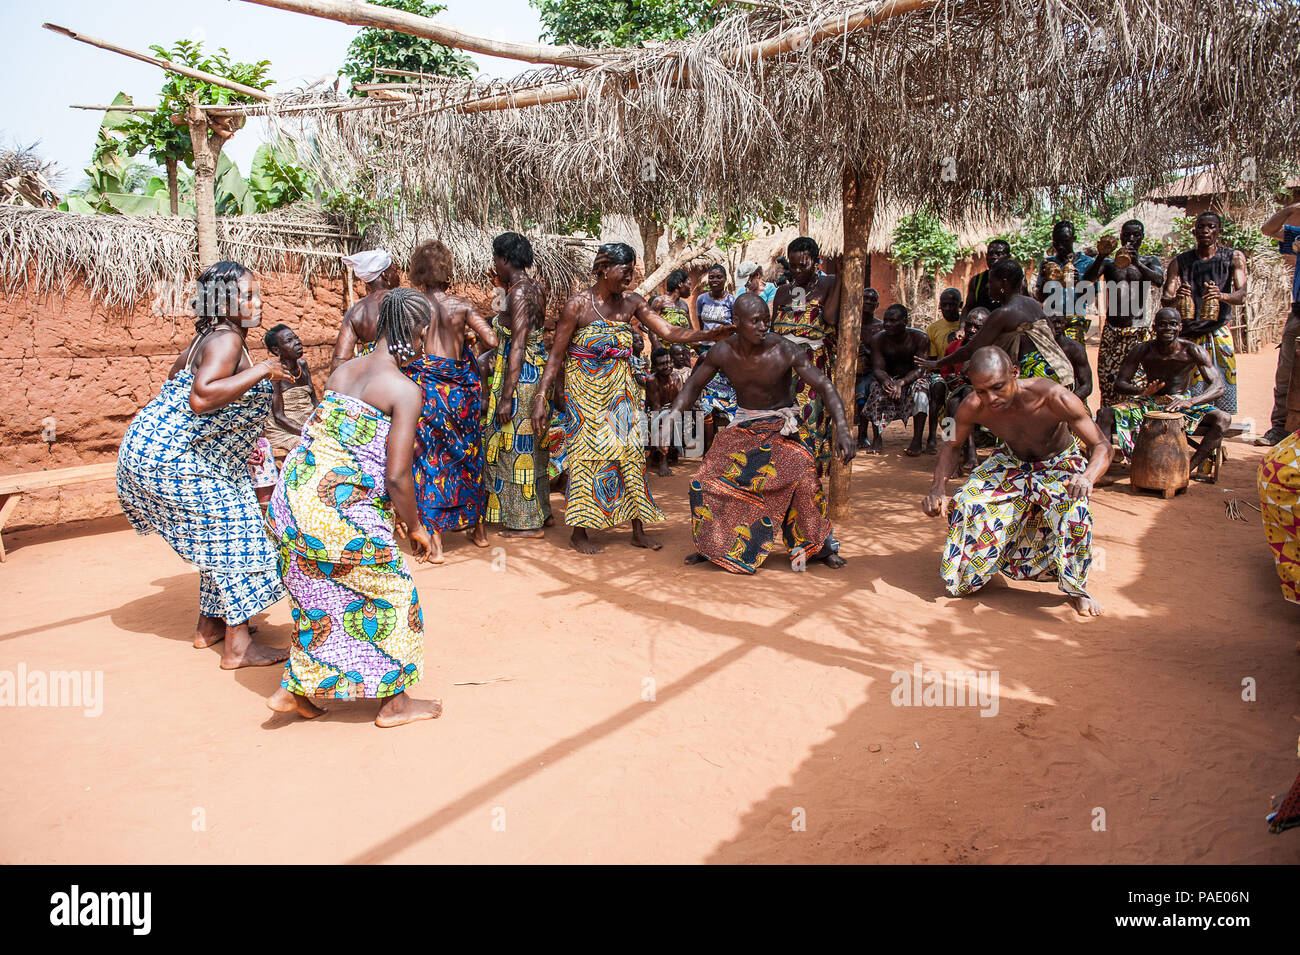 KARA, TOGO - MAR 11, 2012:  Unidentified Togolese people dance  the religious voodoo dance. Voodoo is the West African religion Stock Photo